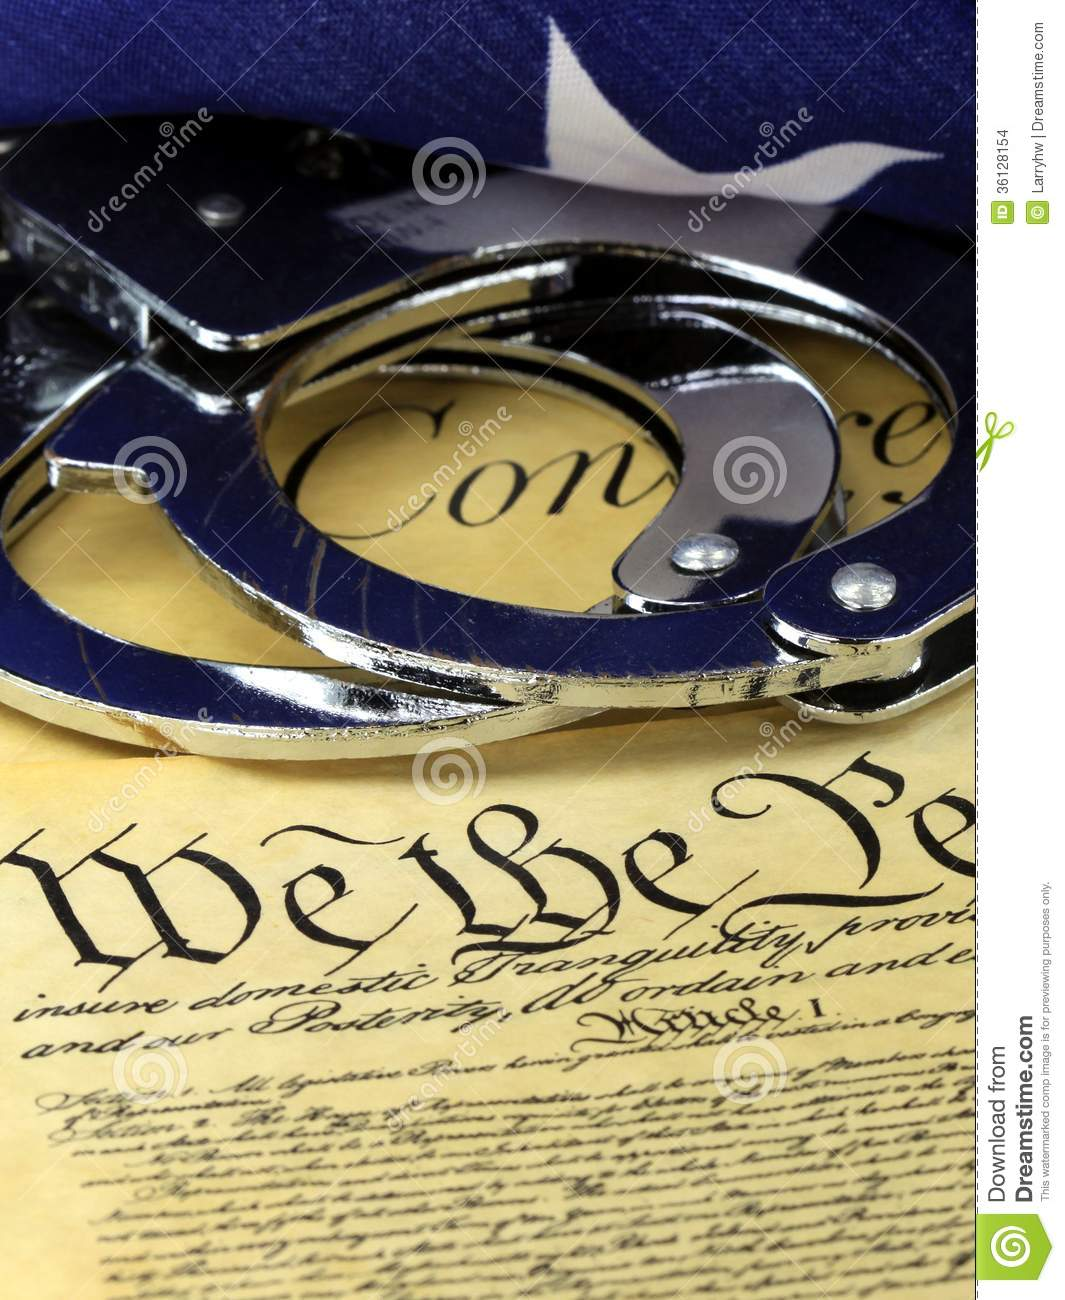 analysis of the fourth amendment in the bill of rights Us constitution  bill of rights bill of rights first amendment [religion, speech, press, assembly,  fourth amendment [search and seizure (1791)] (see.